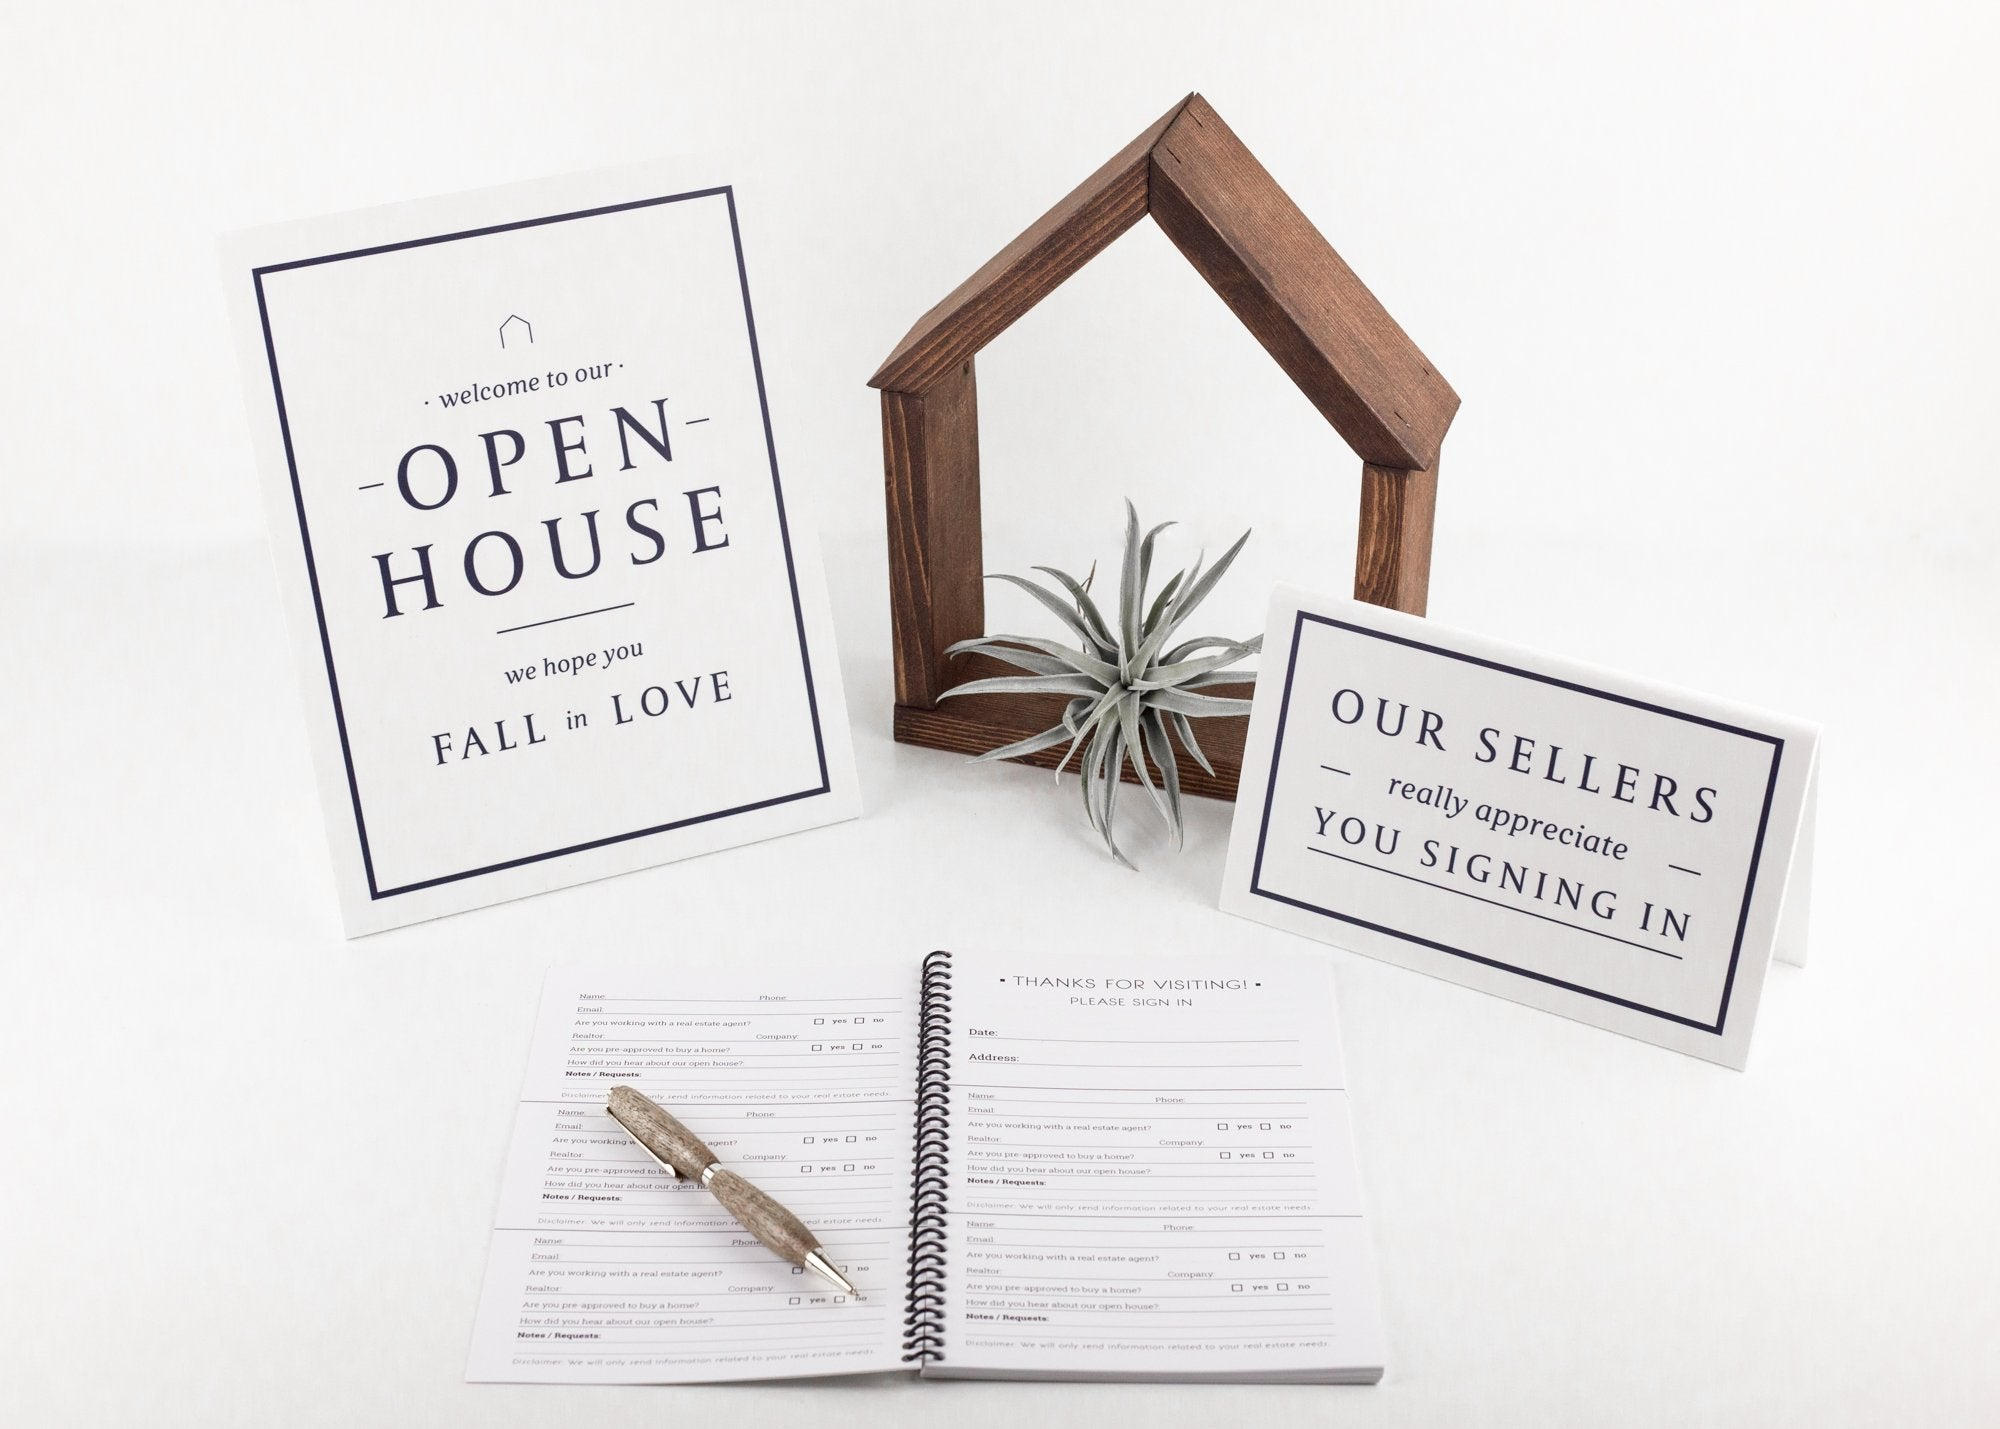 An open house bundle from All Things Real Estate